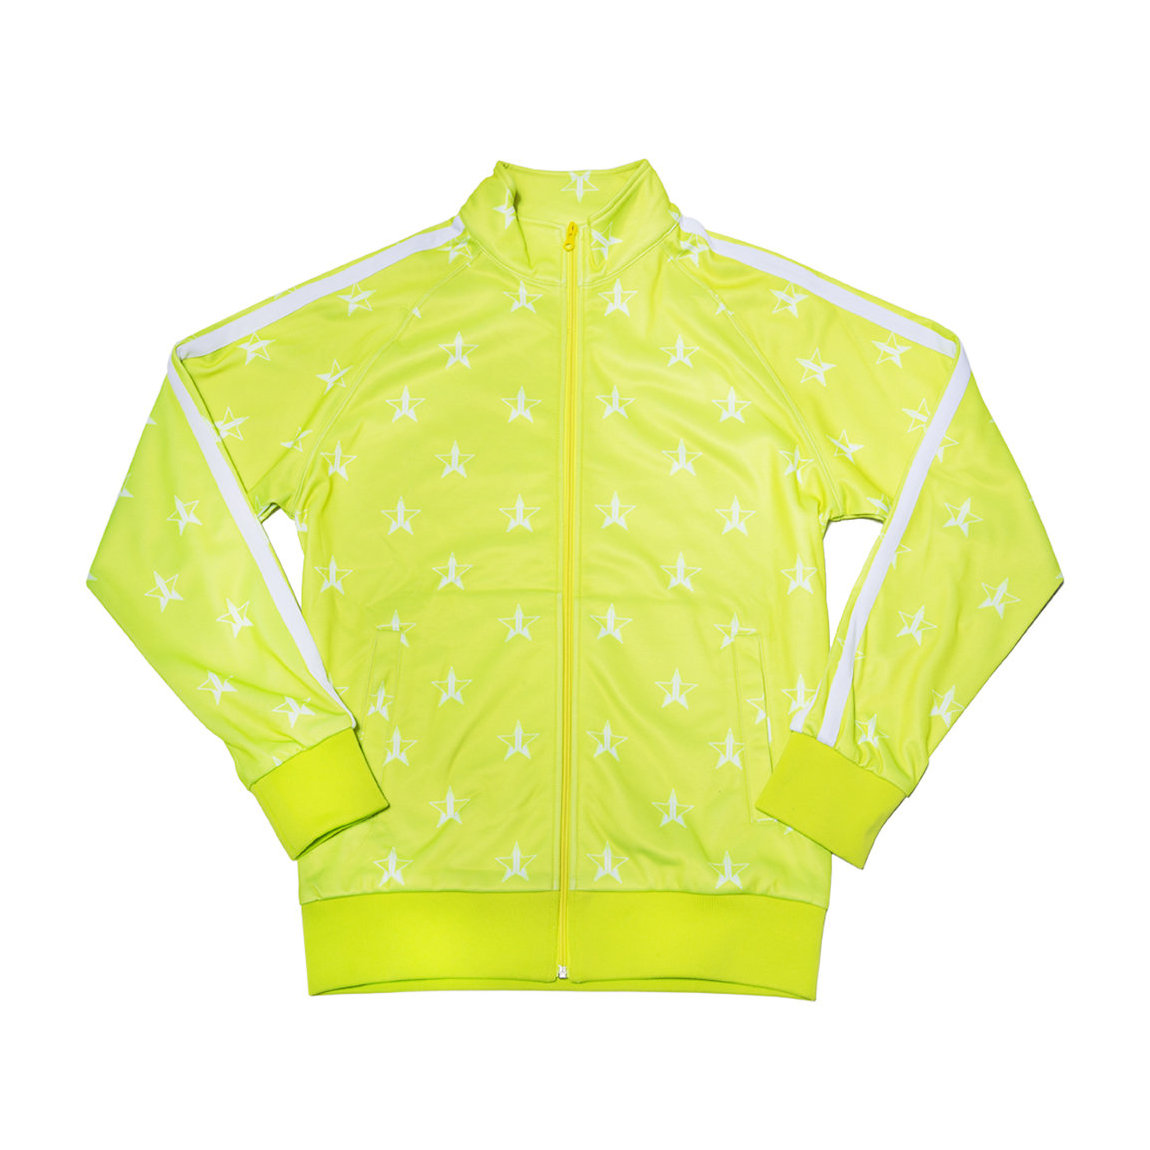 Jeffree Star Cosmetics Chartreuse Track Jacket Small product smear.